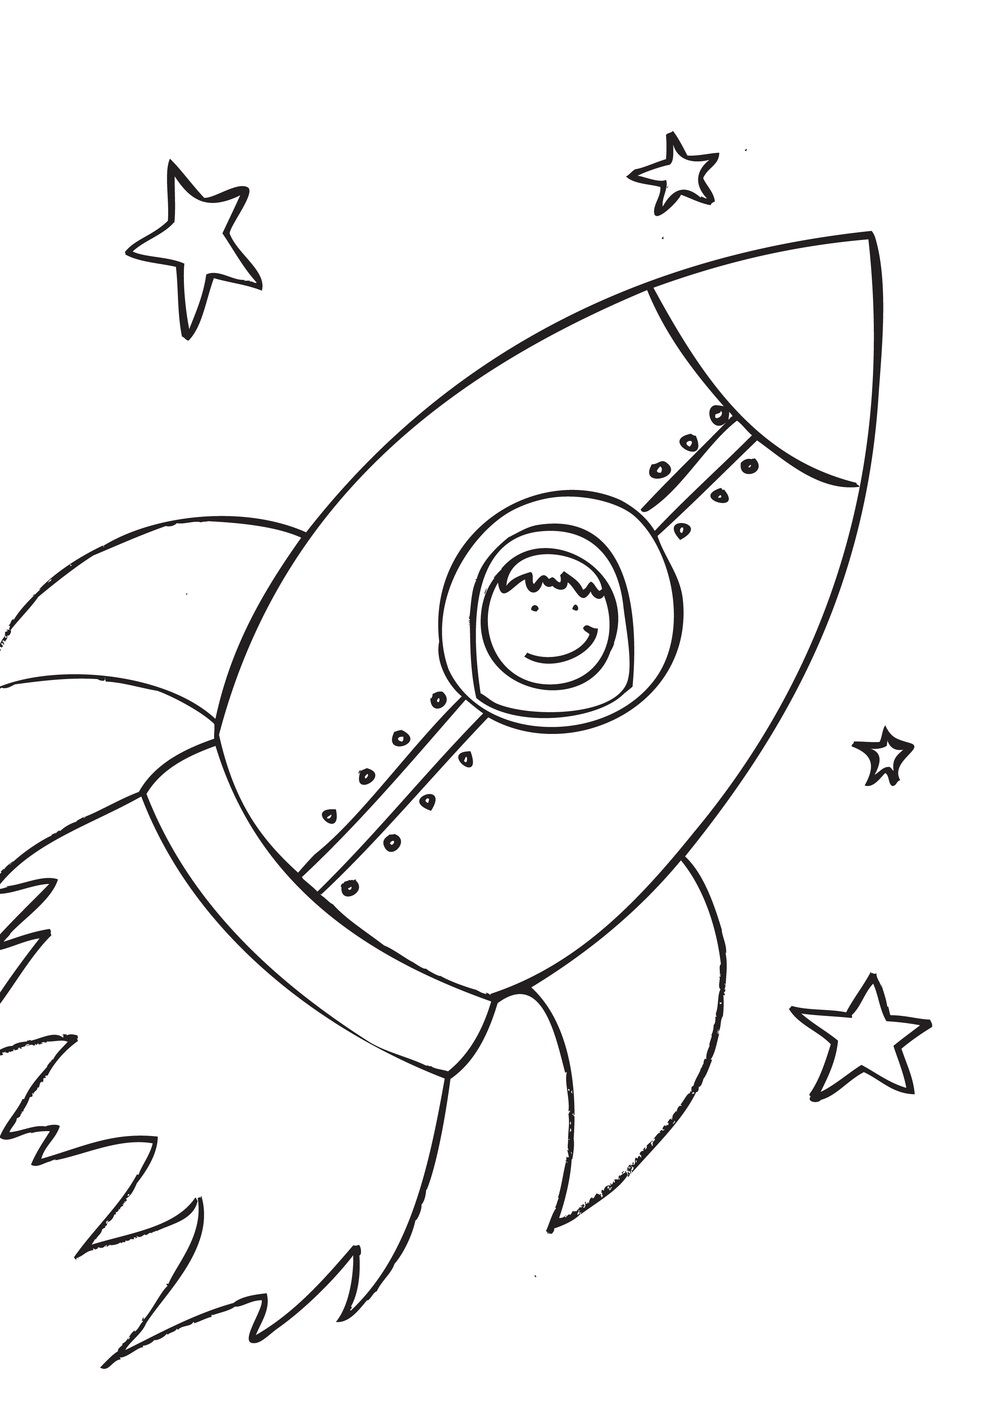 Free Rocket Ship Coloring Pages With Printable Rocket Ship